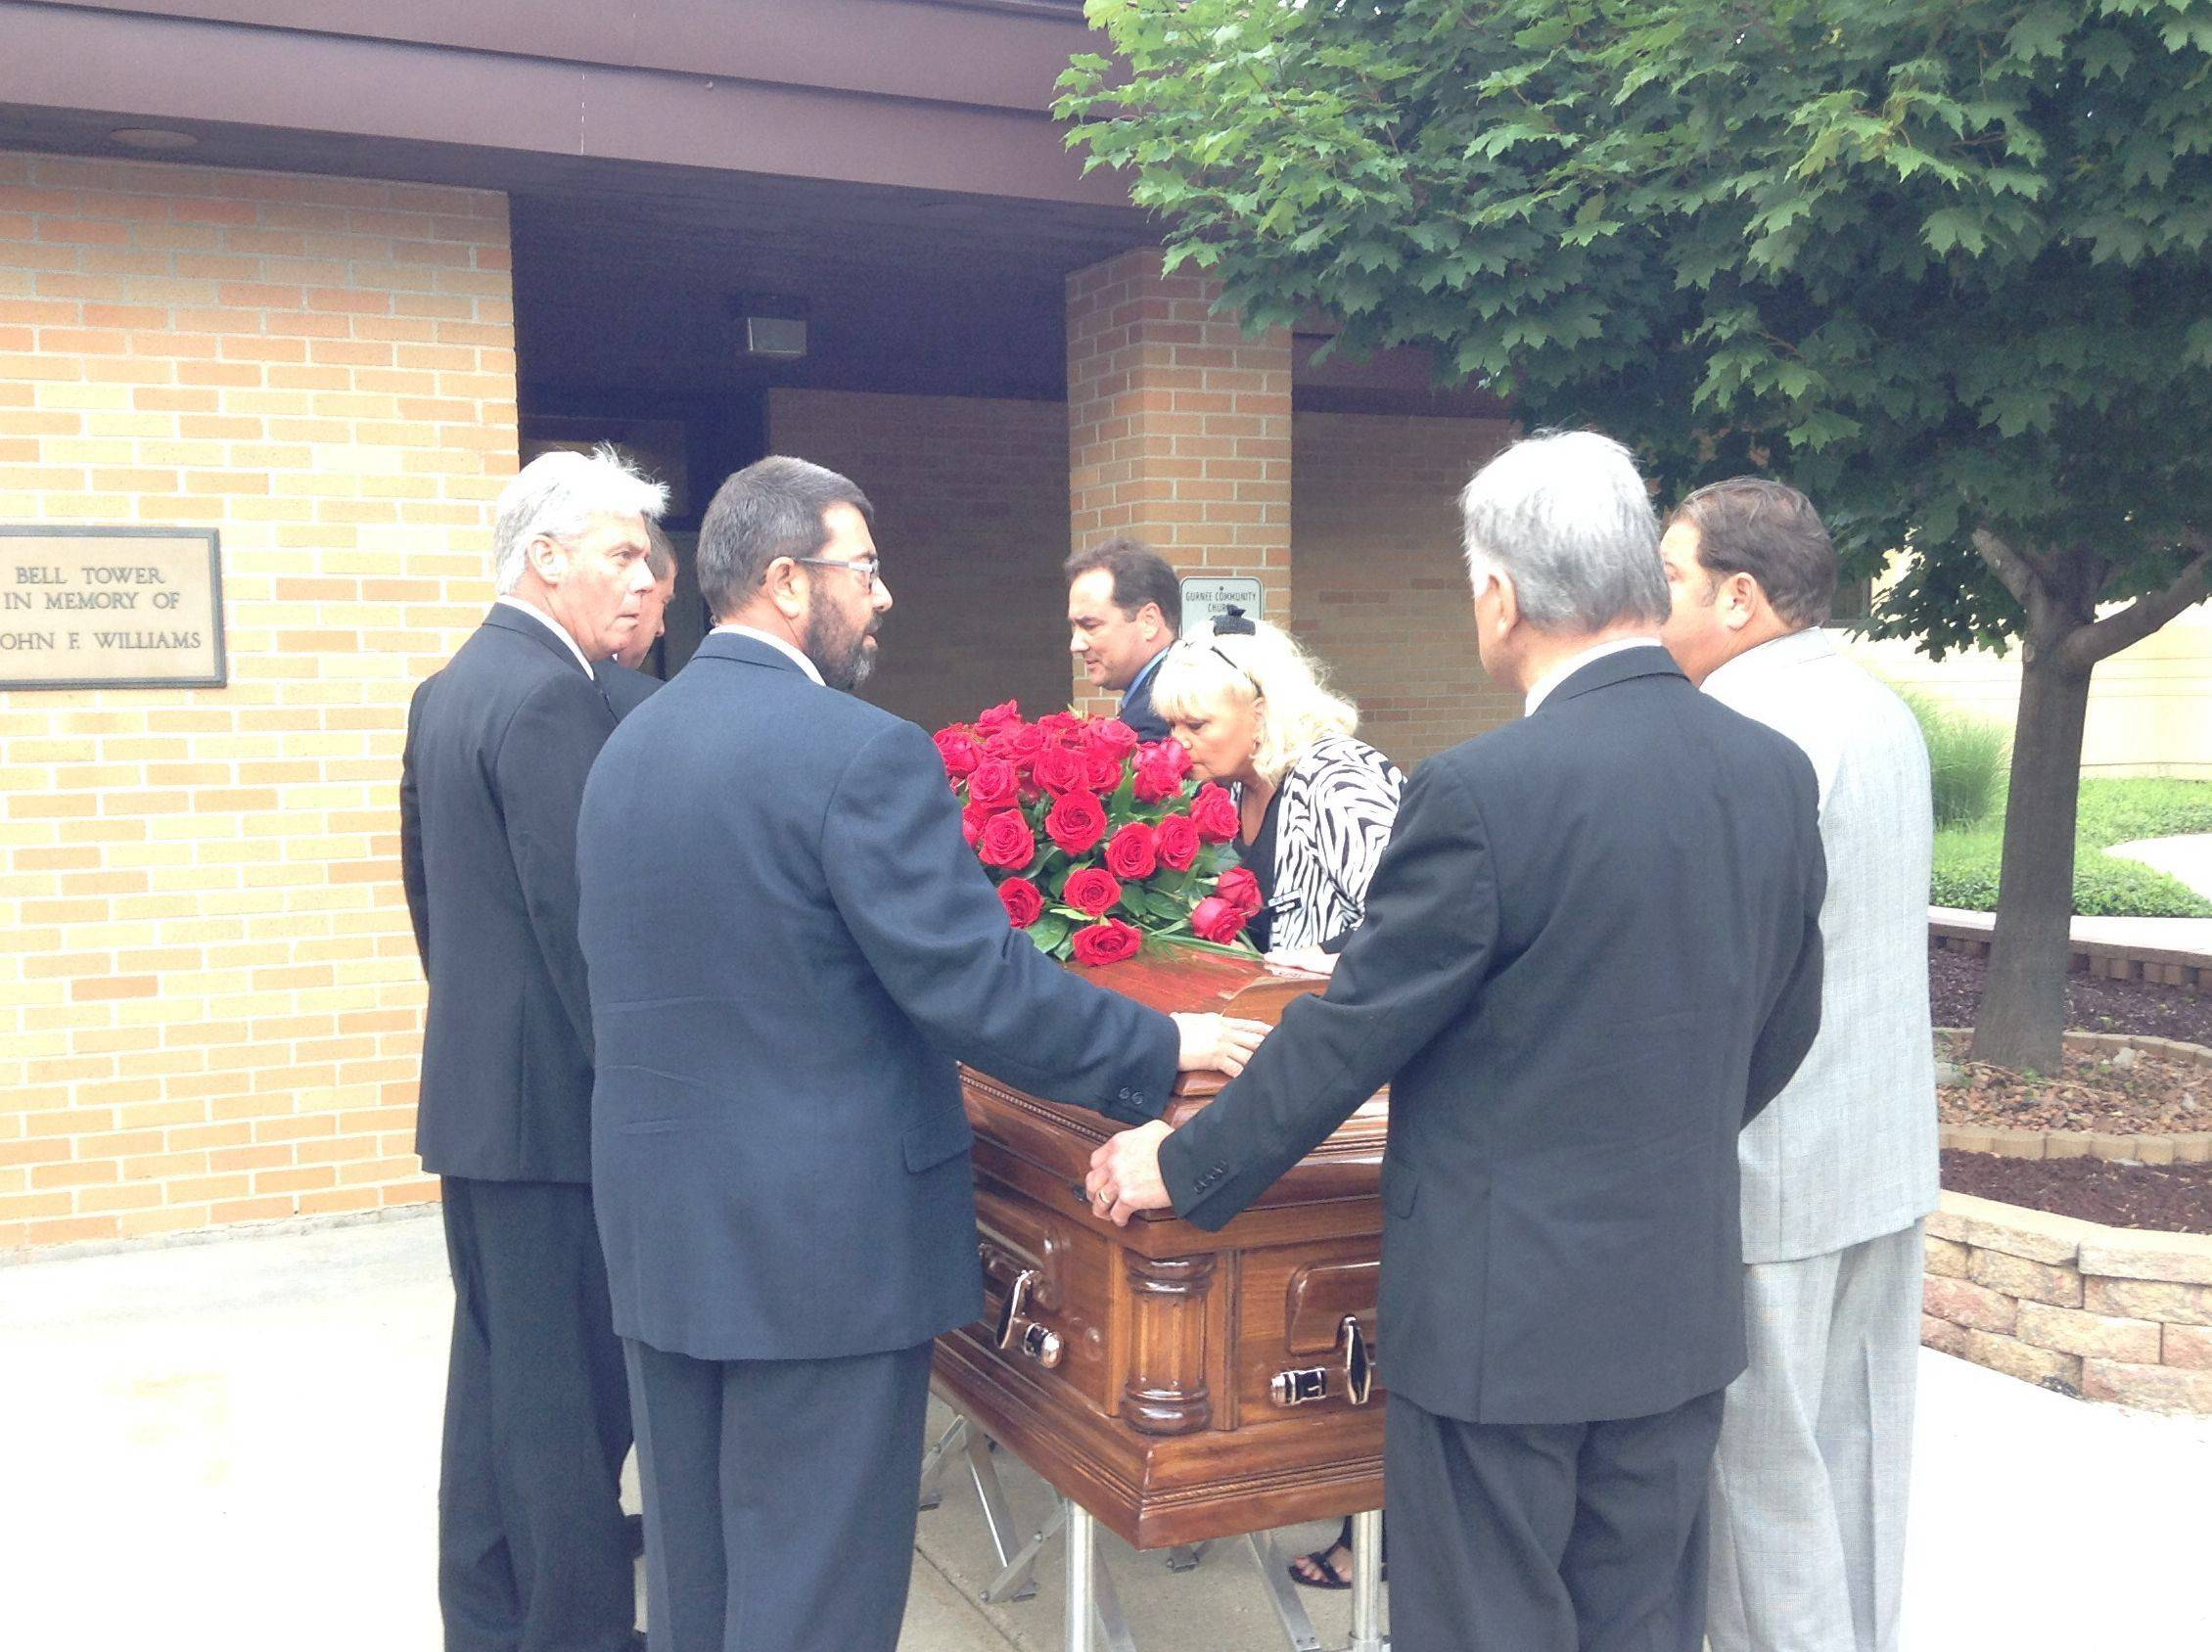 Family members of Robert W. Depke escort his casket into the Gurnee Community Church for the longtime Lake County politician's memorial service Saturday.